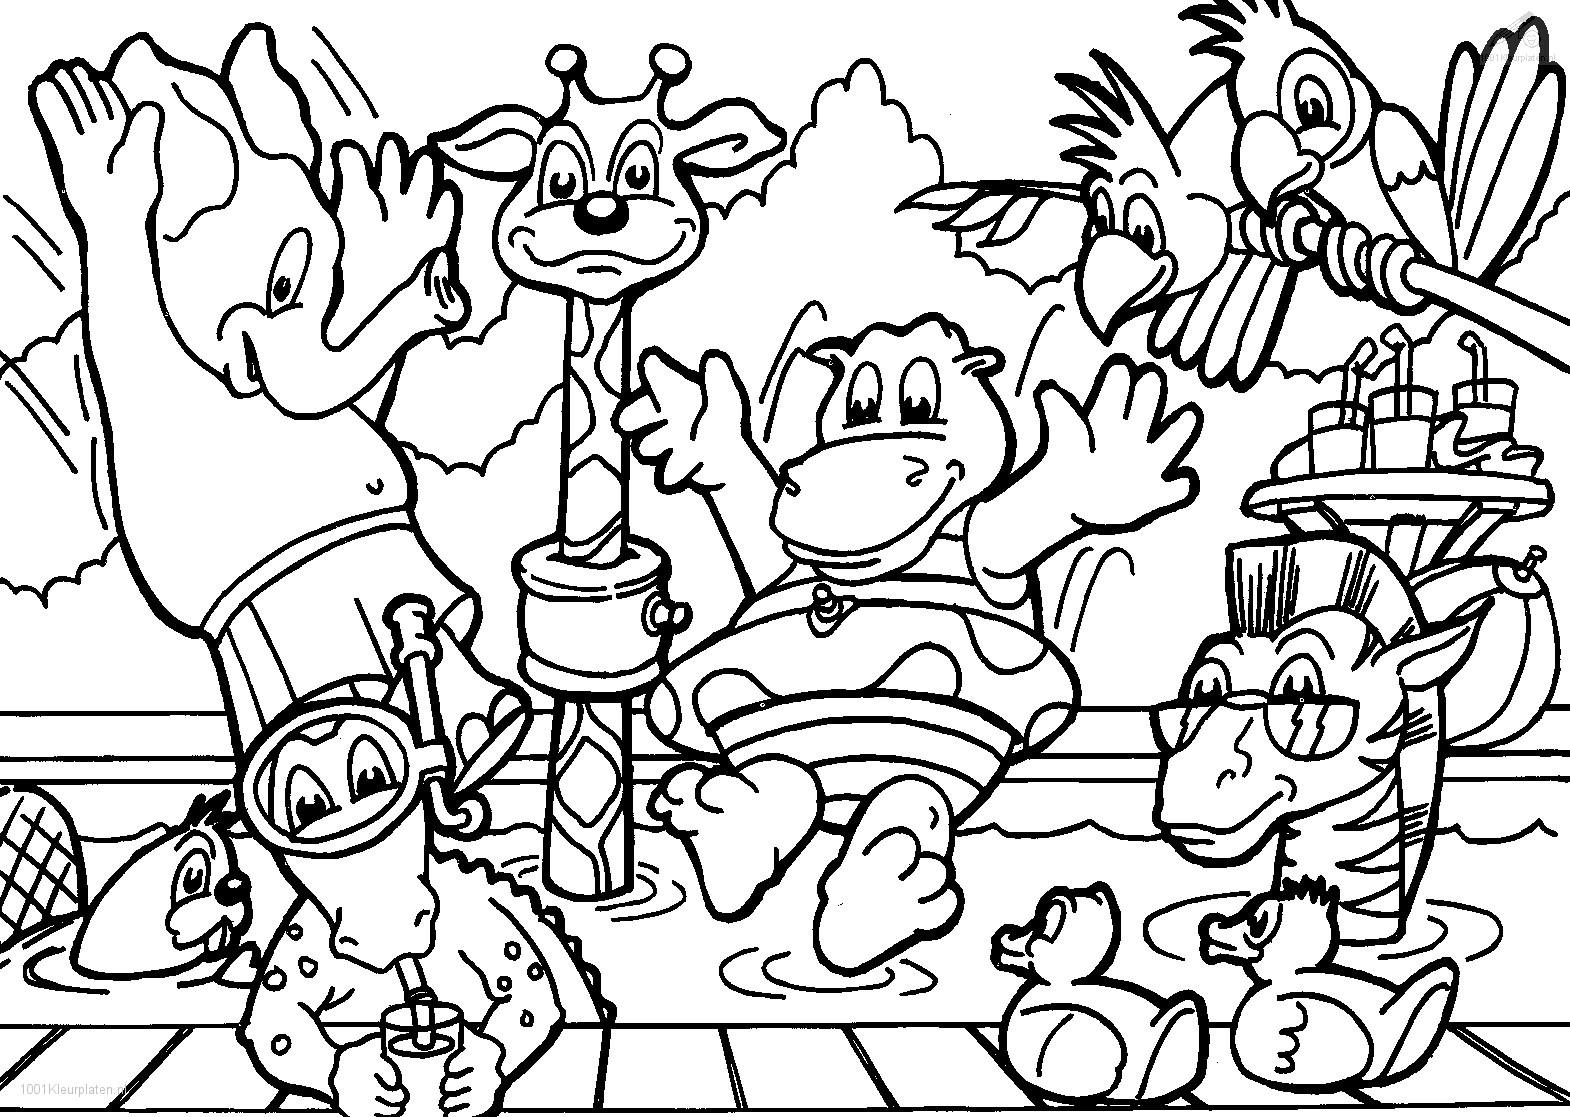 free animal coloring pages for kids lisa frank animals coloring pages download and print for free kids coloring pages animal free for